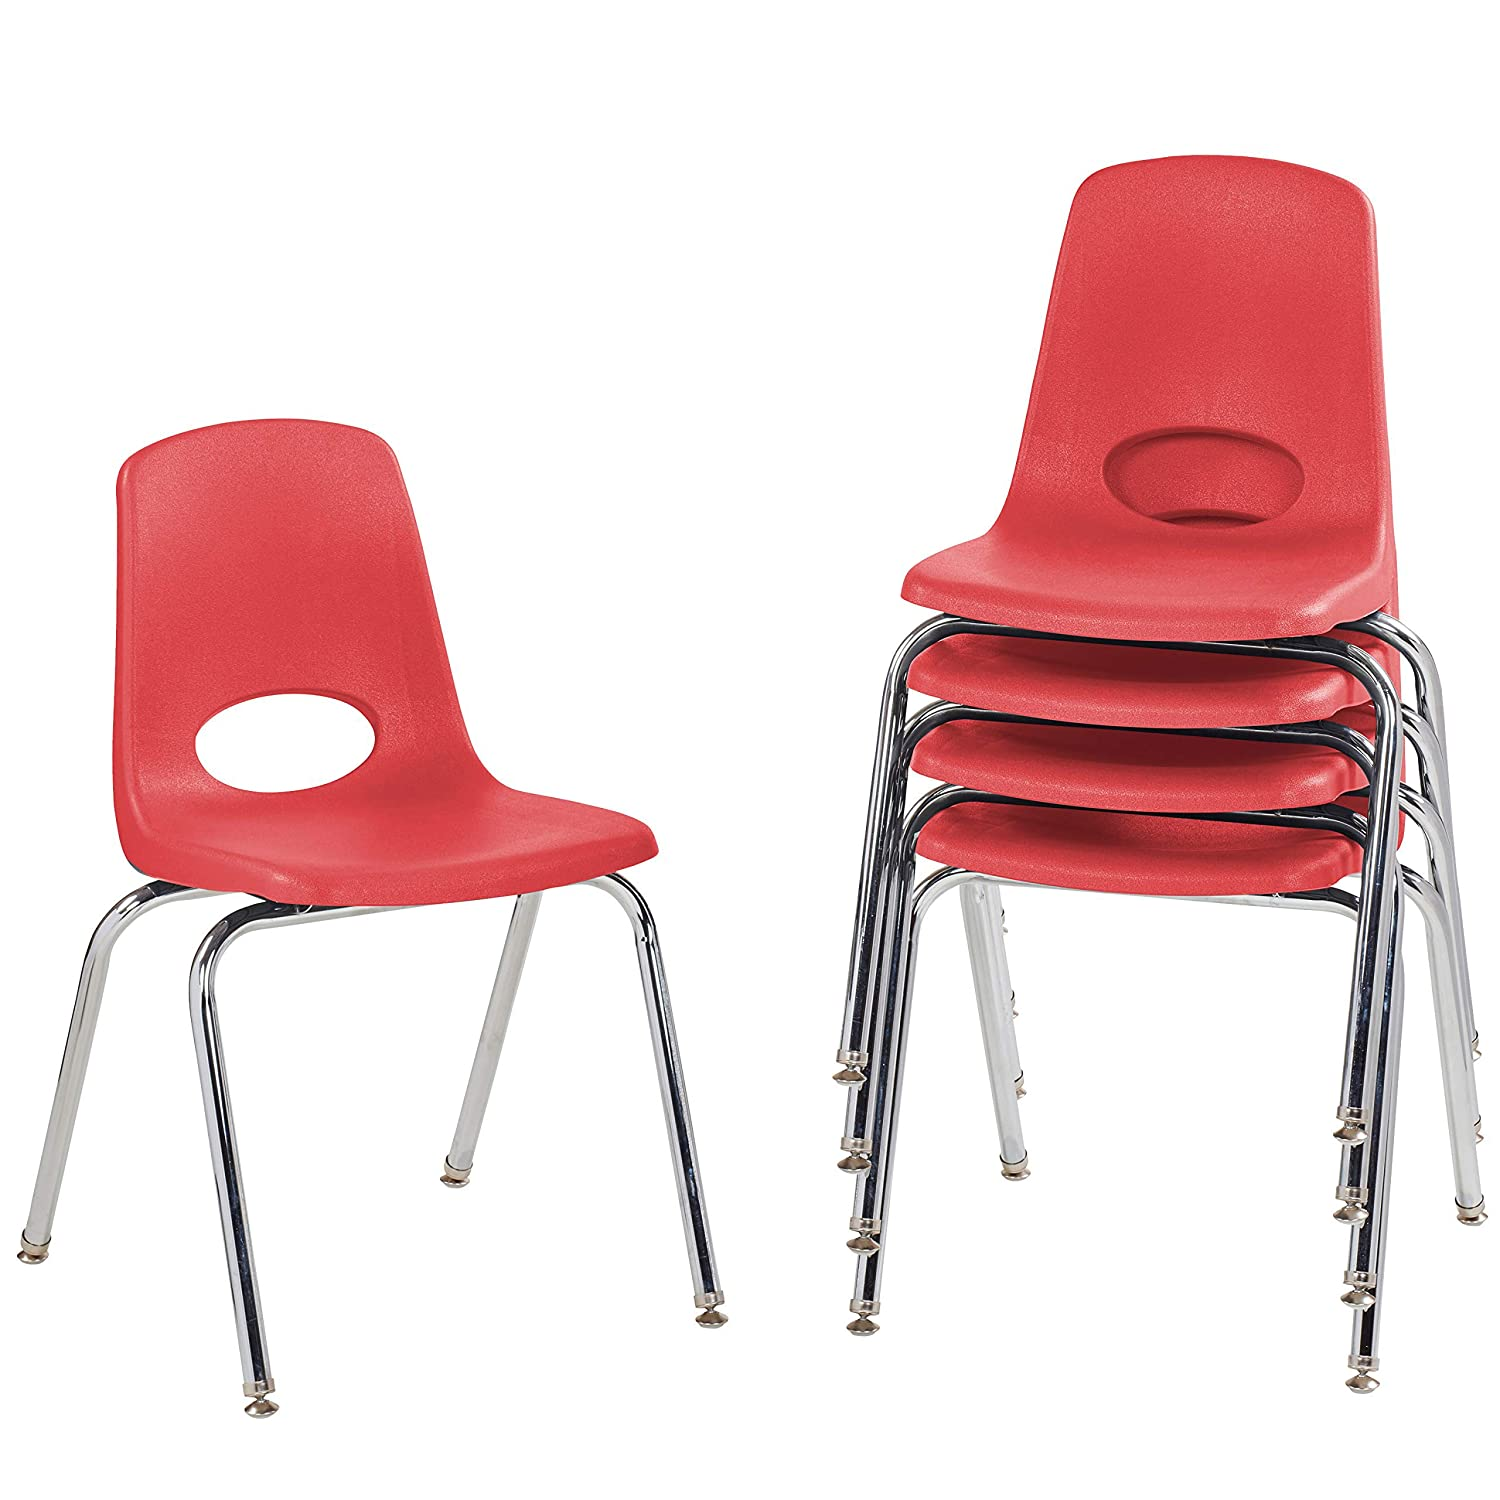 """FDP-10371-RD 18"""" School Stack Chair,Stacking Student Seat with Chromed Steel Legs and Nylon Swivel Glides; for in-Home Learning, Classroom or Office - Red (5-Pack): Industrial & Scientific"""